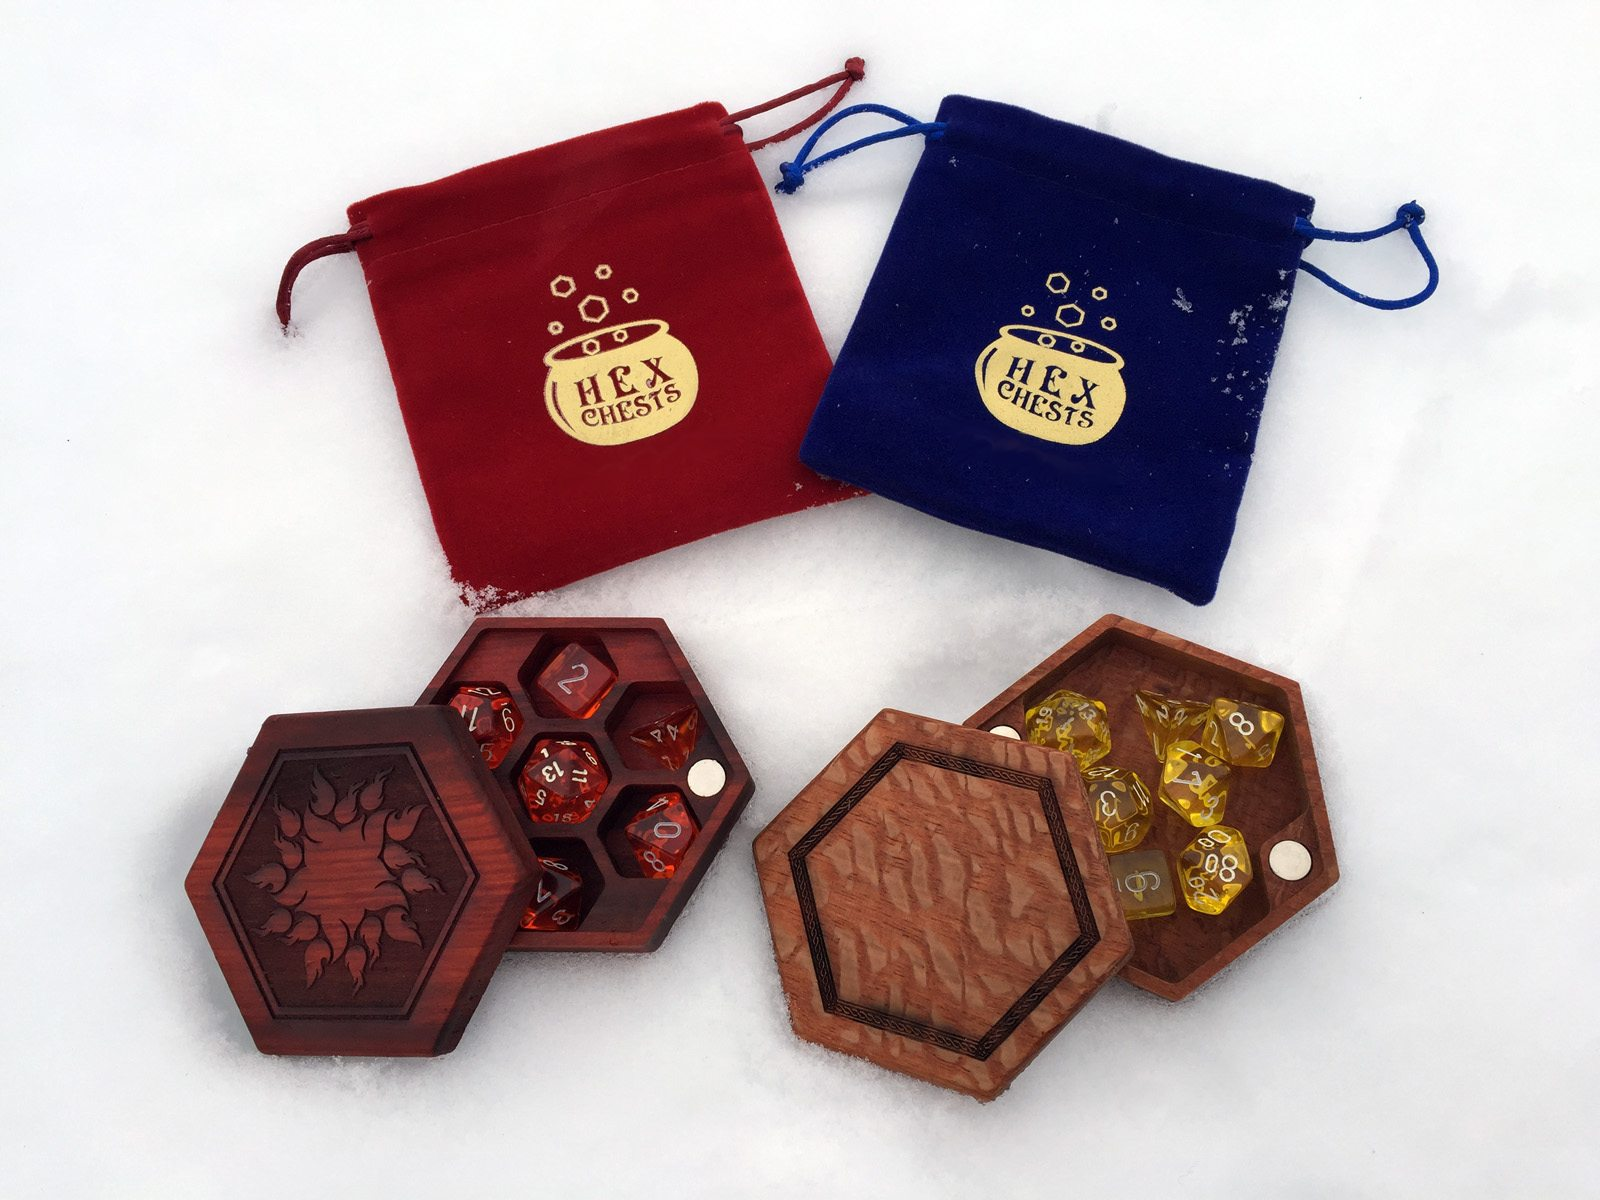 Redheart and Lacewood Hex Chests